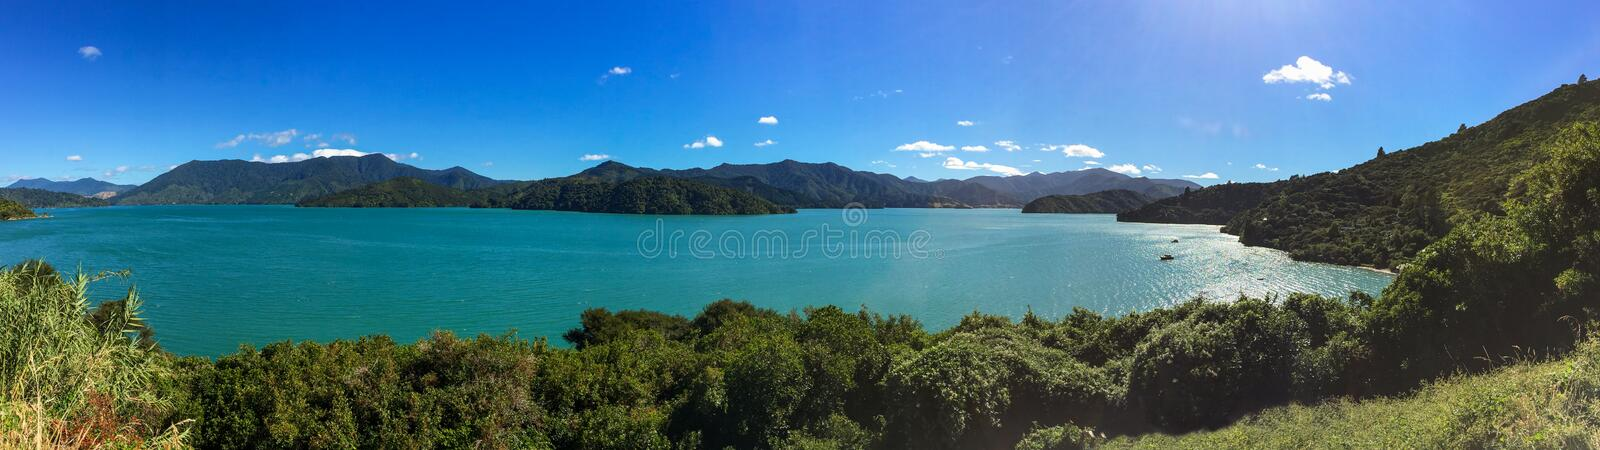 A sweeping panoramic view of the beautiful Marlbough Sounds, New Zealand, sparkling waters, clear blue skies stock photos